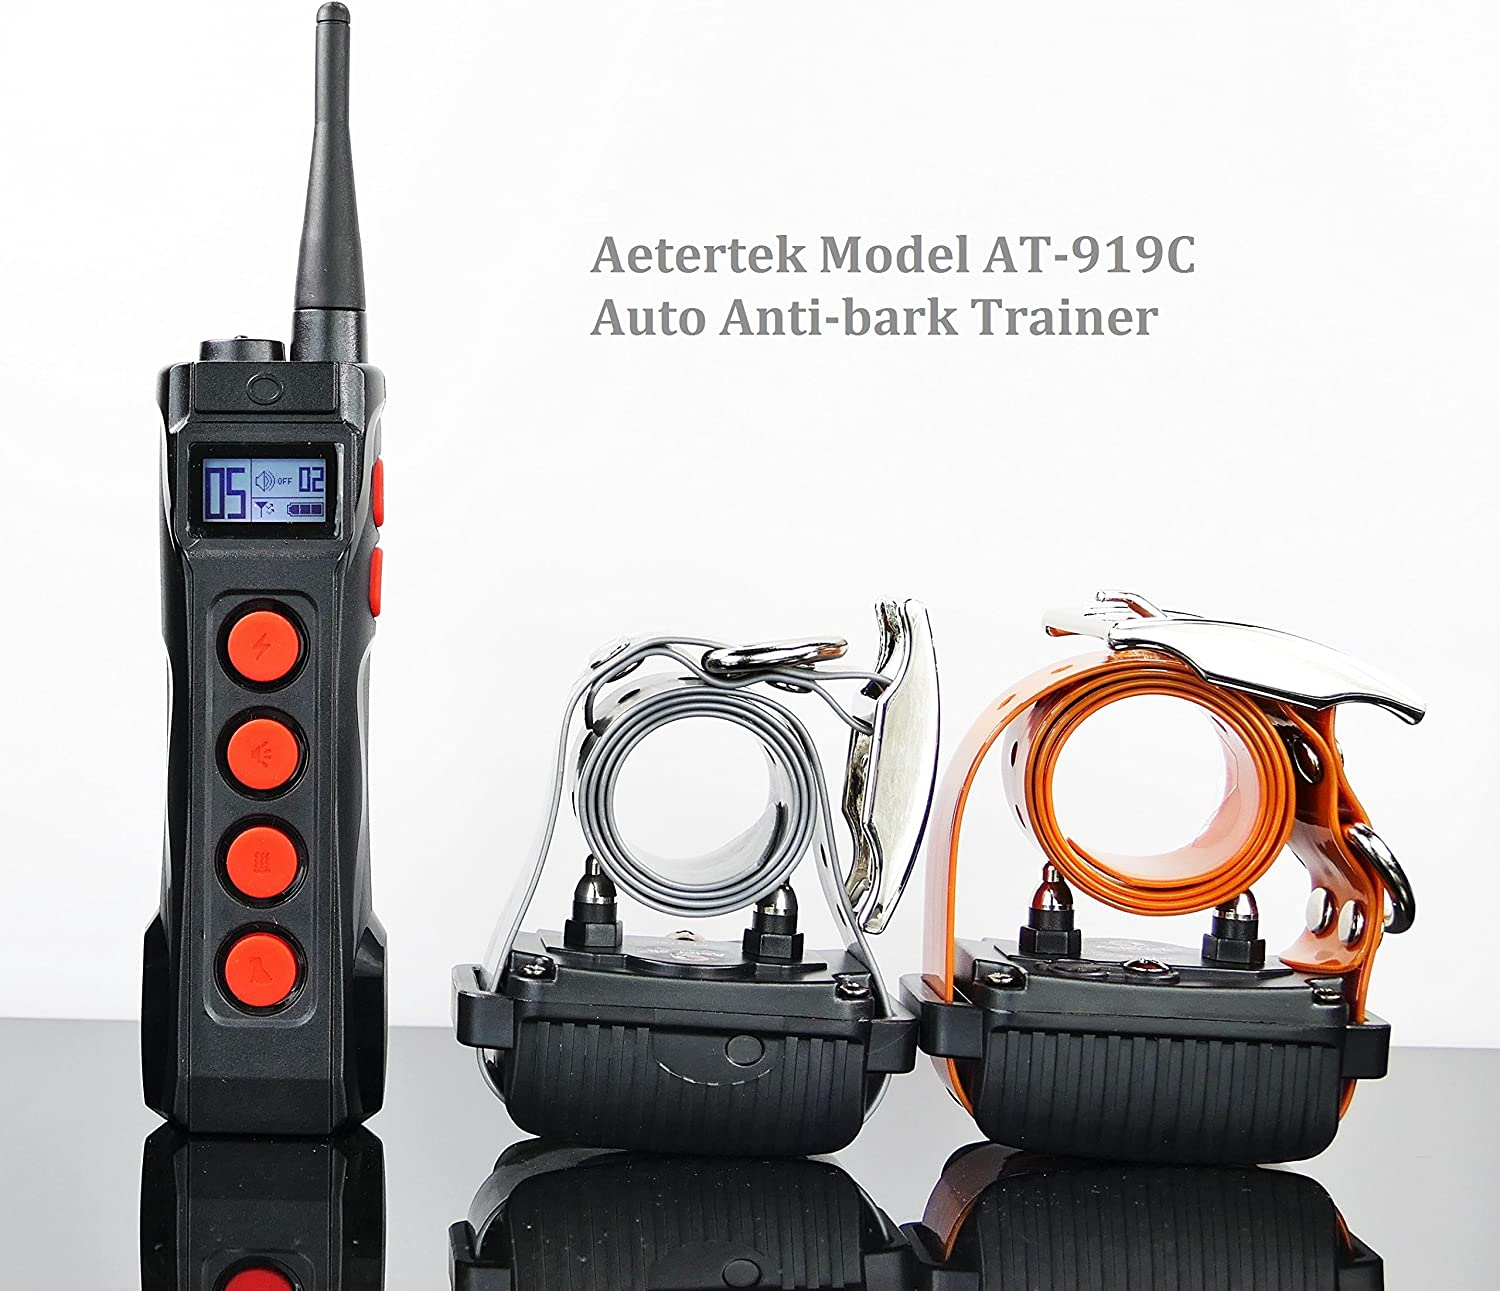 AETERTEK 1000 Meter Remote Dog Training Trainer Rechargeable Waterproof Collar w Safe and Humane Tone,Vibration,10 Levels of Adjustable Static Stimulation,Auto Anti Bark (Two Dog Set)